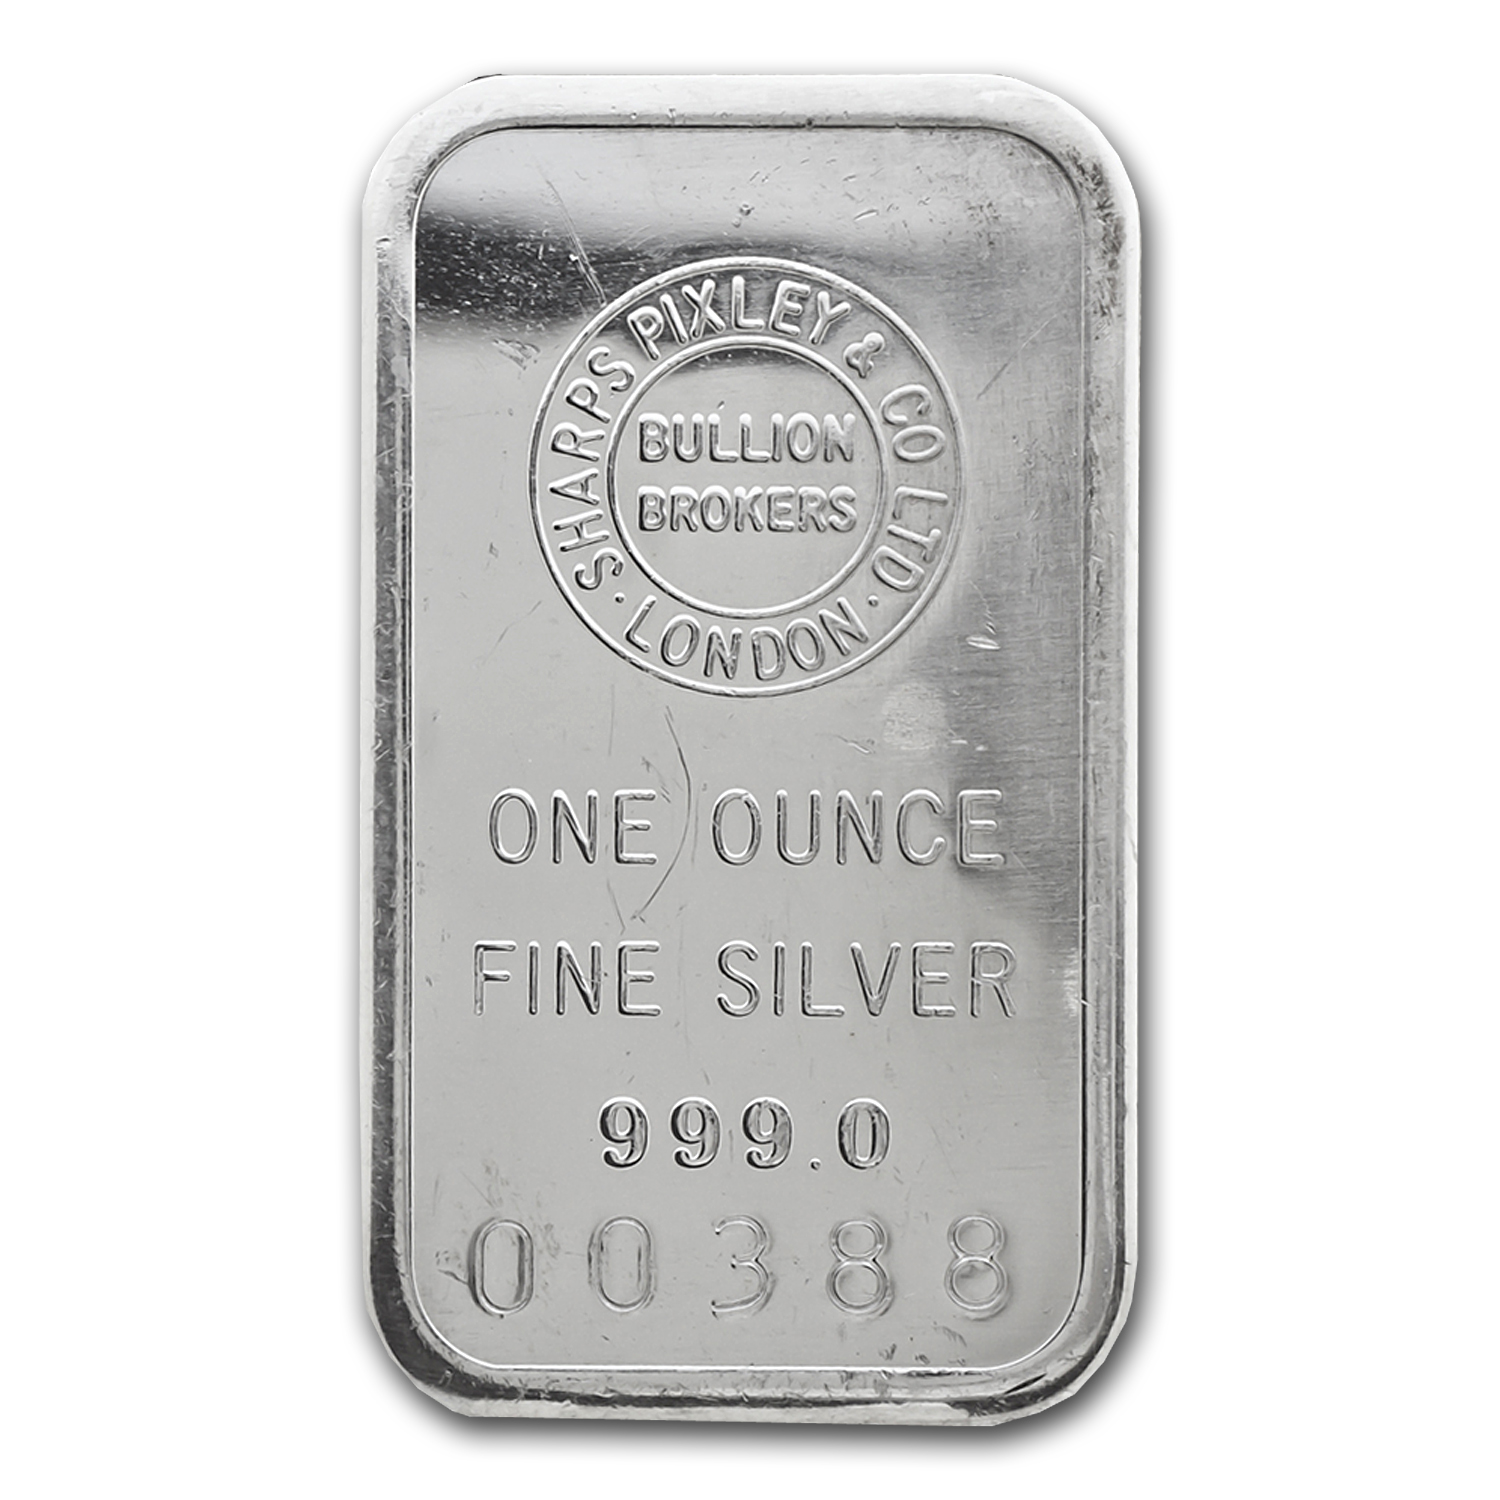 1 oz Silver Bar - Sharps Pixley & Co LTD